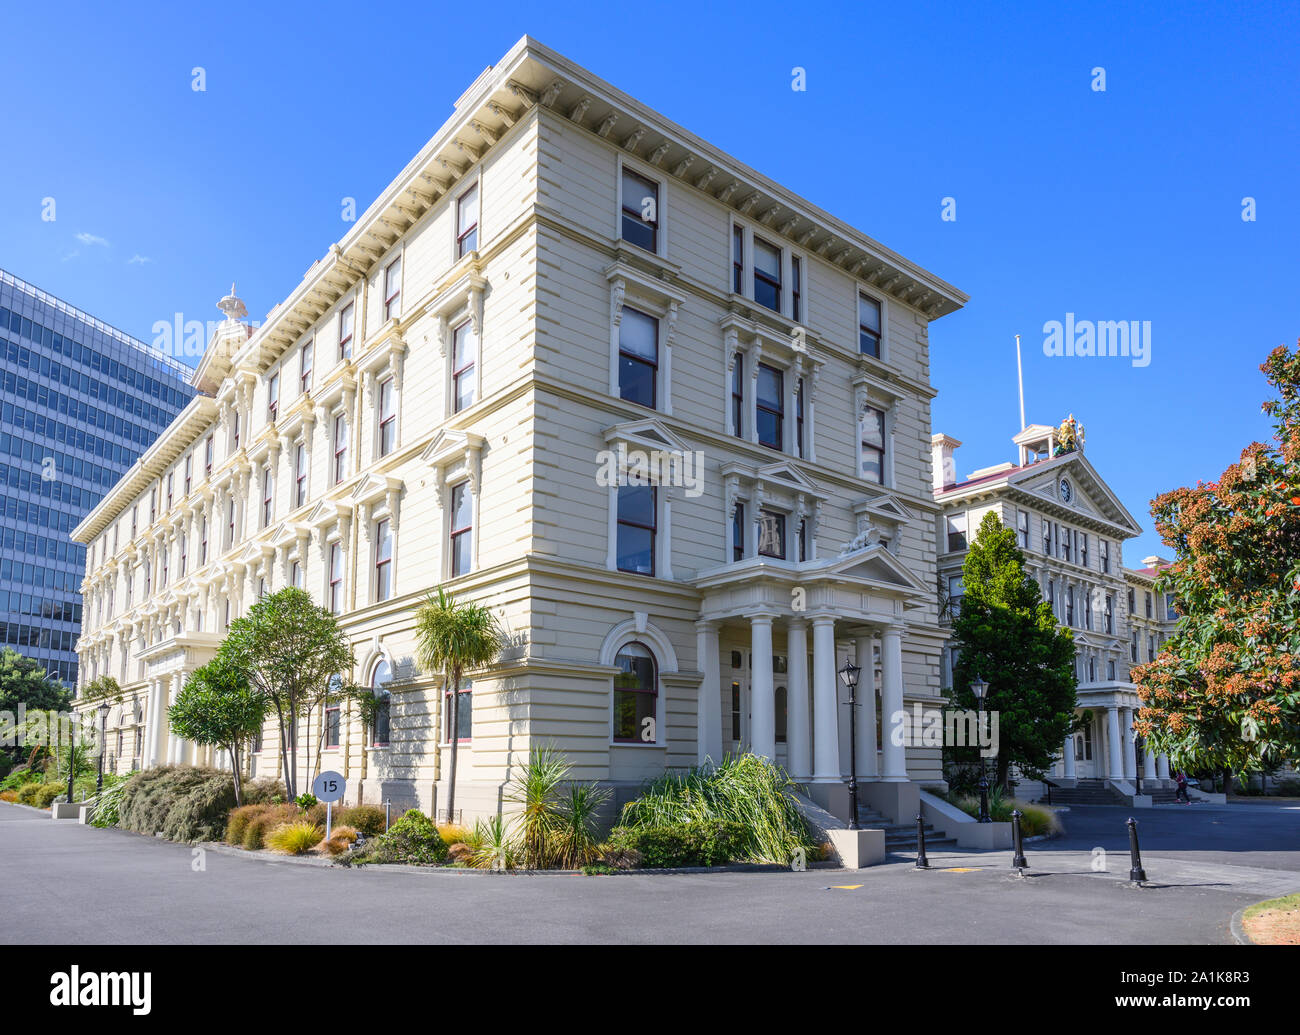 The wooden-constructed Old Government Buildings (1876), on Lambton Quay, were built to house New Zealand's civil service.  Wellington, New Zealand Stock Photo